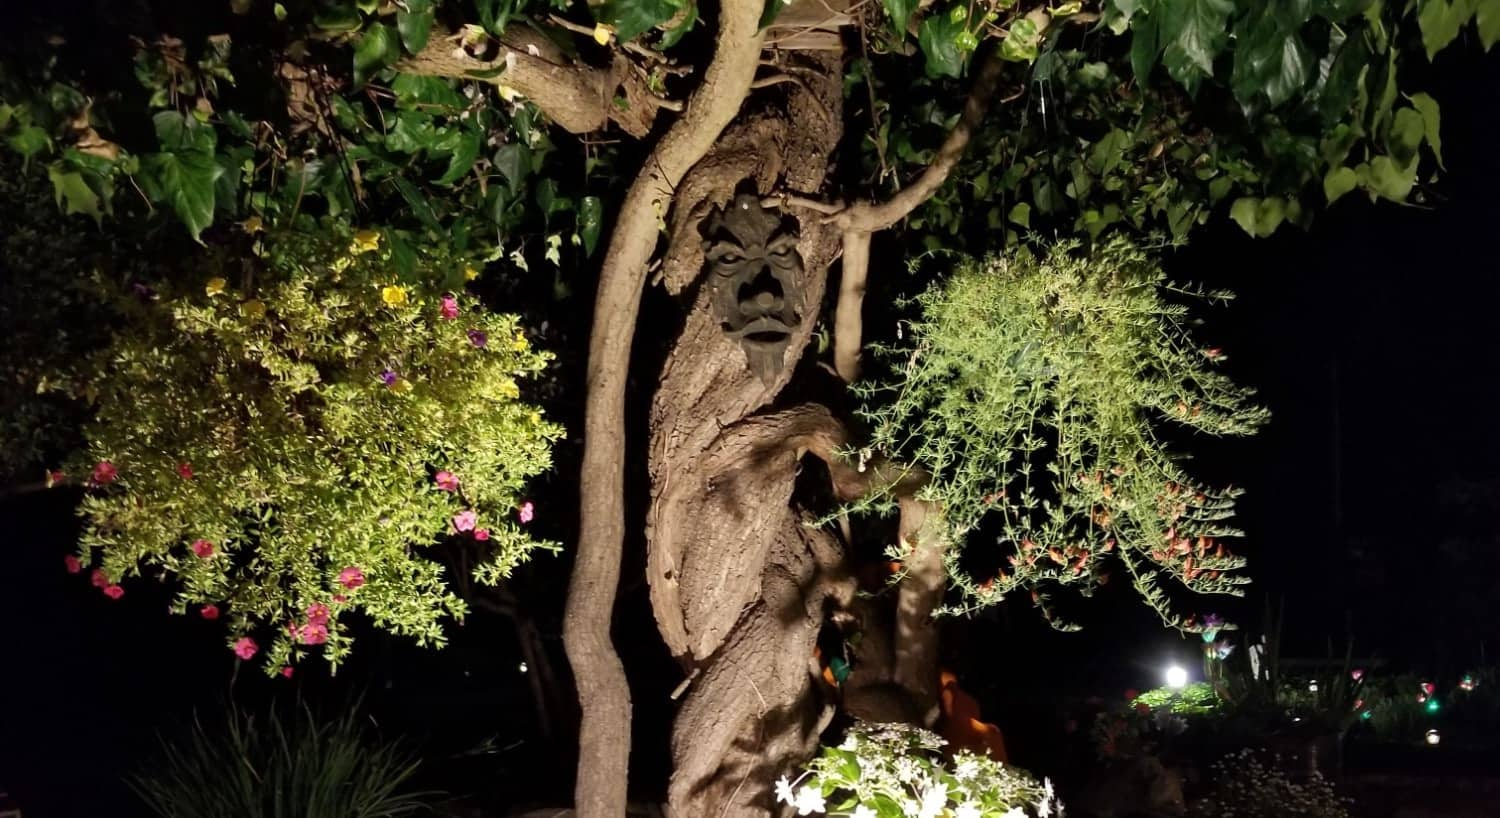 View of tree with twisted trunk and wooden mask at night with a spotlight surrounded by hanging flowers baskets